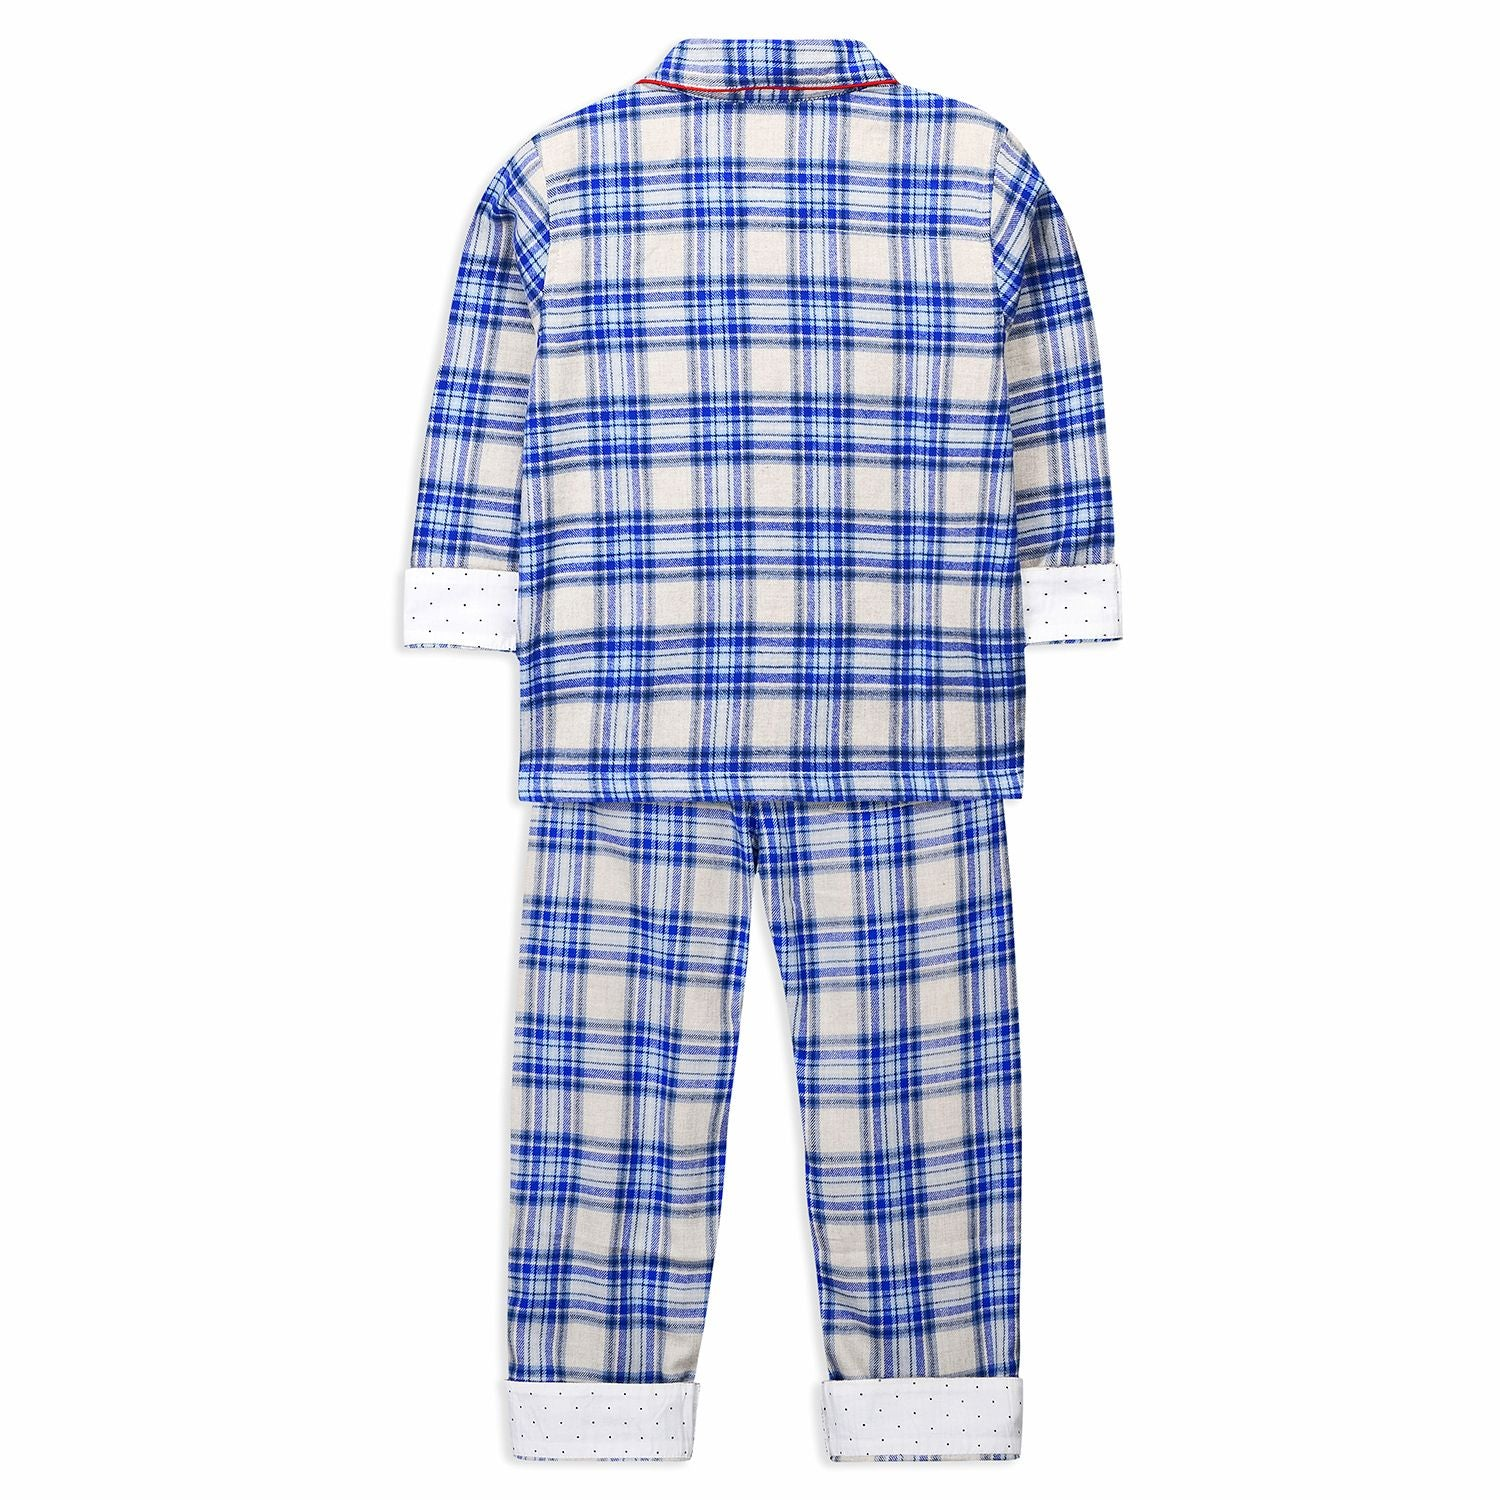 Sleepy PJ Set  for kids